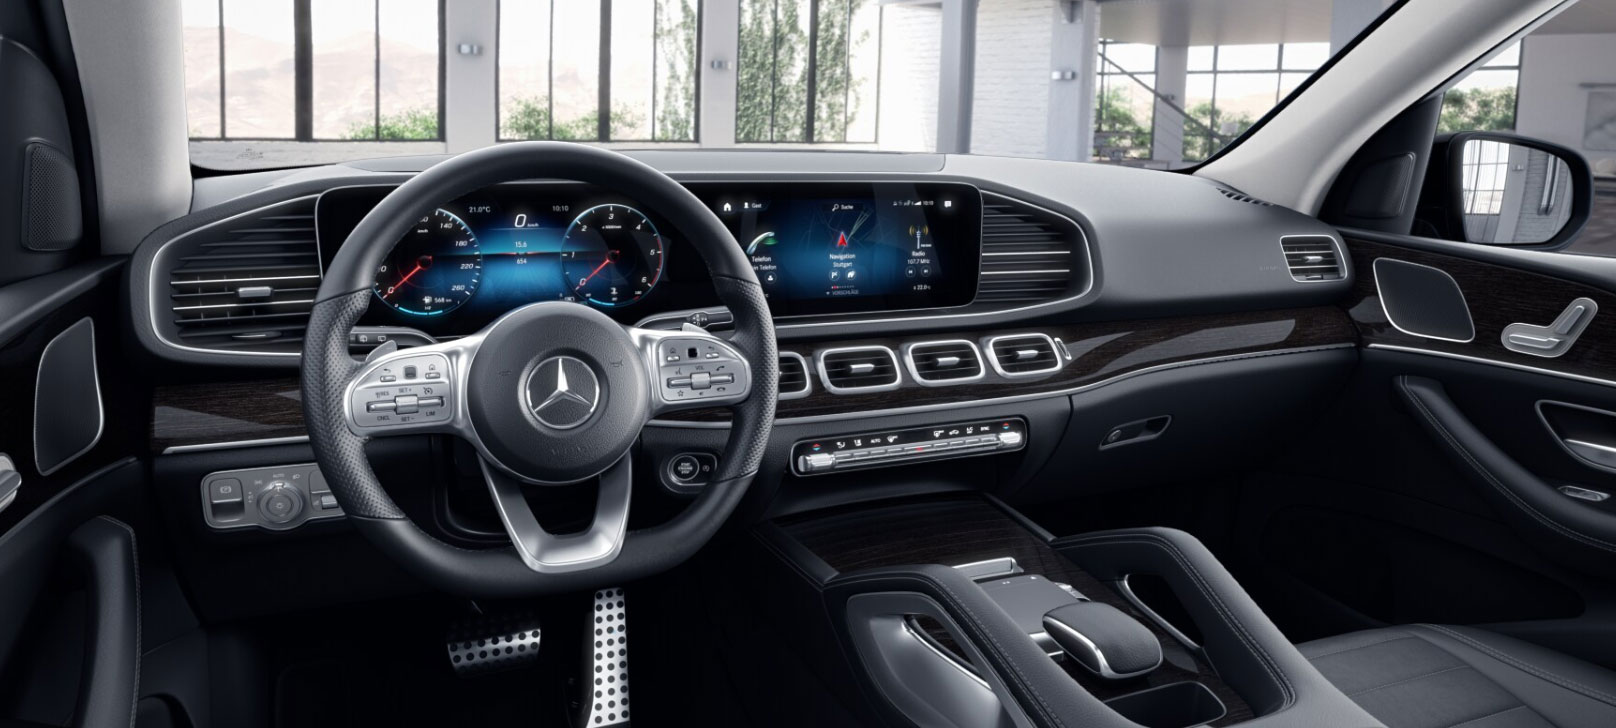 Mercedes-Benz GLE кокпіт